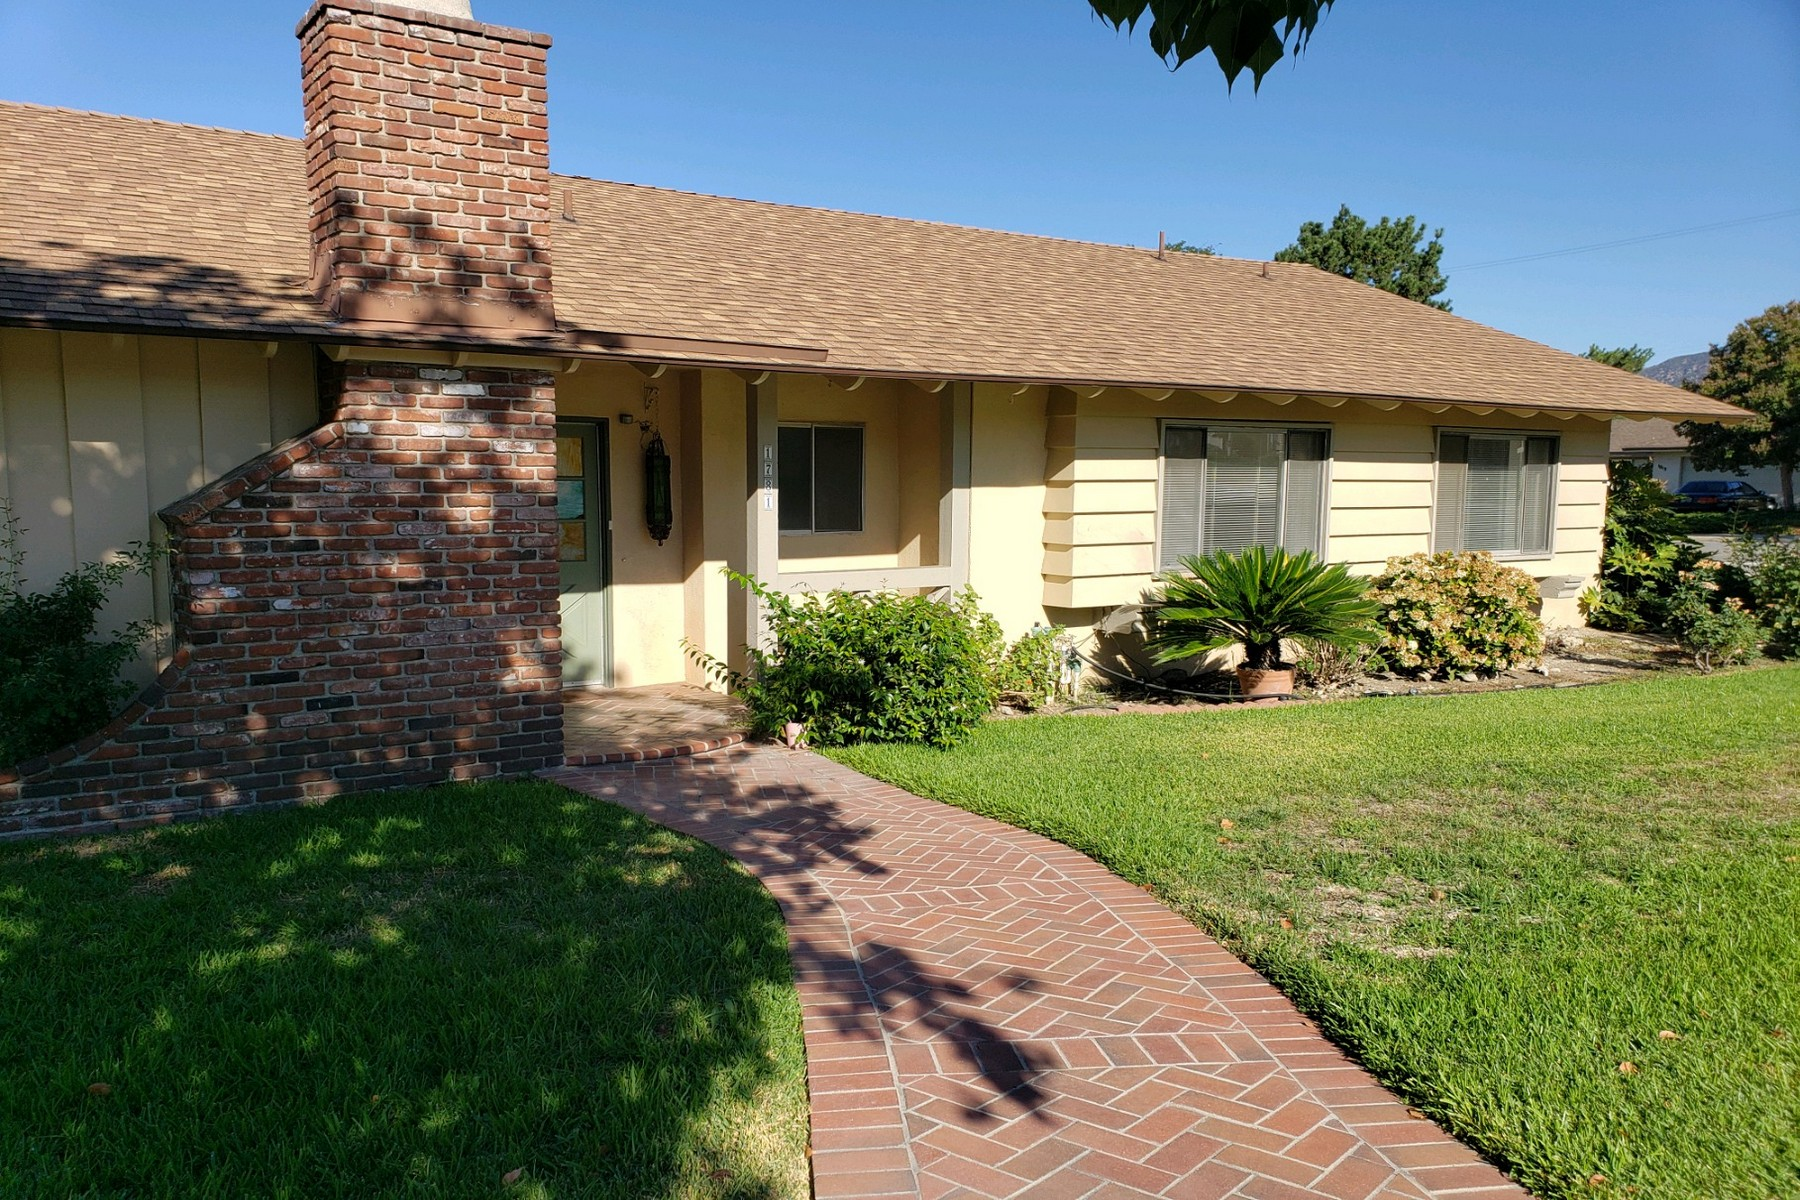 Single Family Homes for Sale at Claremont 1781 Danbury Road Claremont, California 91711 United States